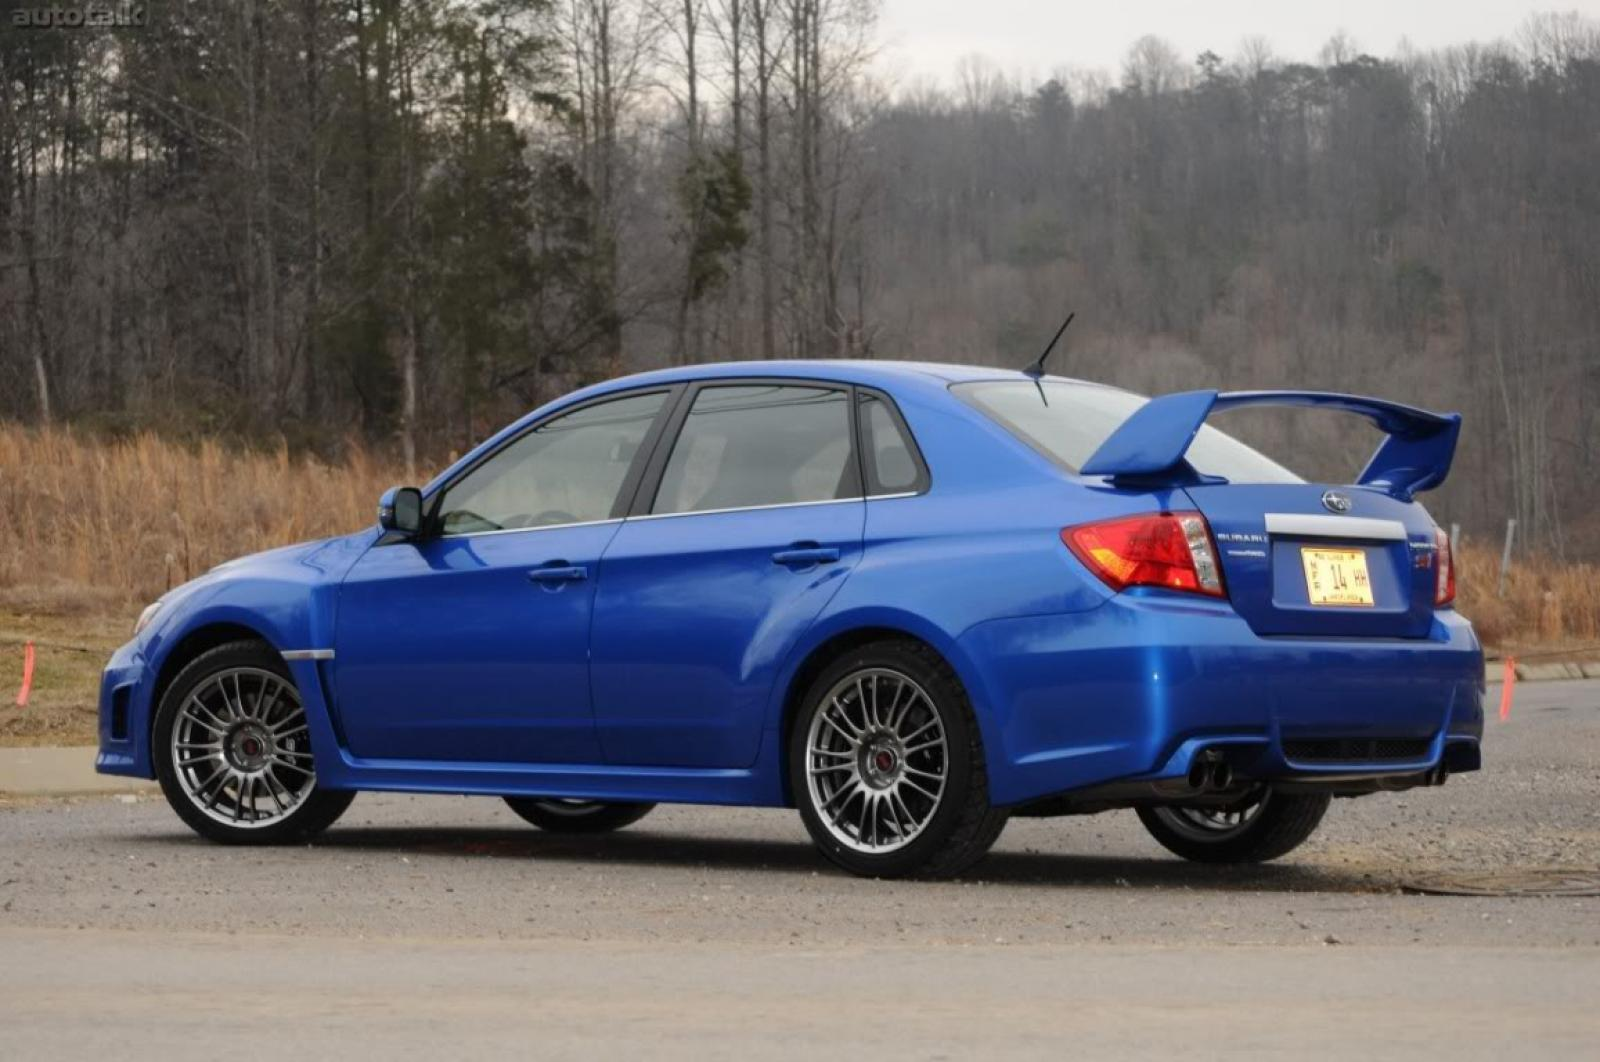 2013 subaru impreza wrx information and photos zombiedrive. Black Bedroom Furniture Sets. Home Design Ideas